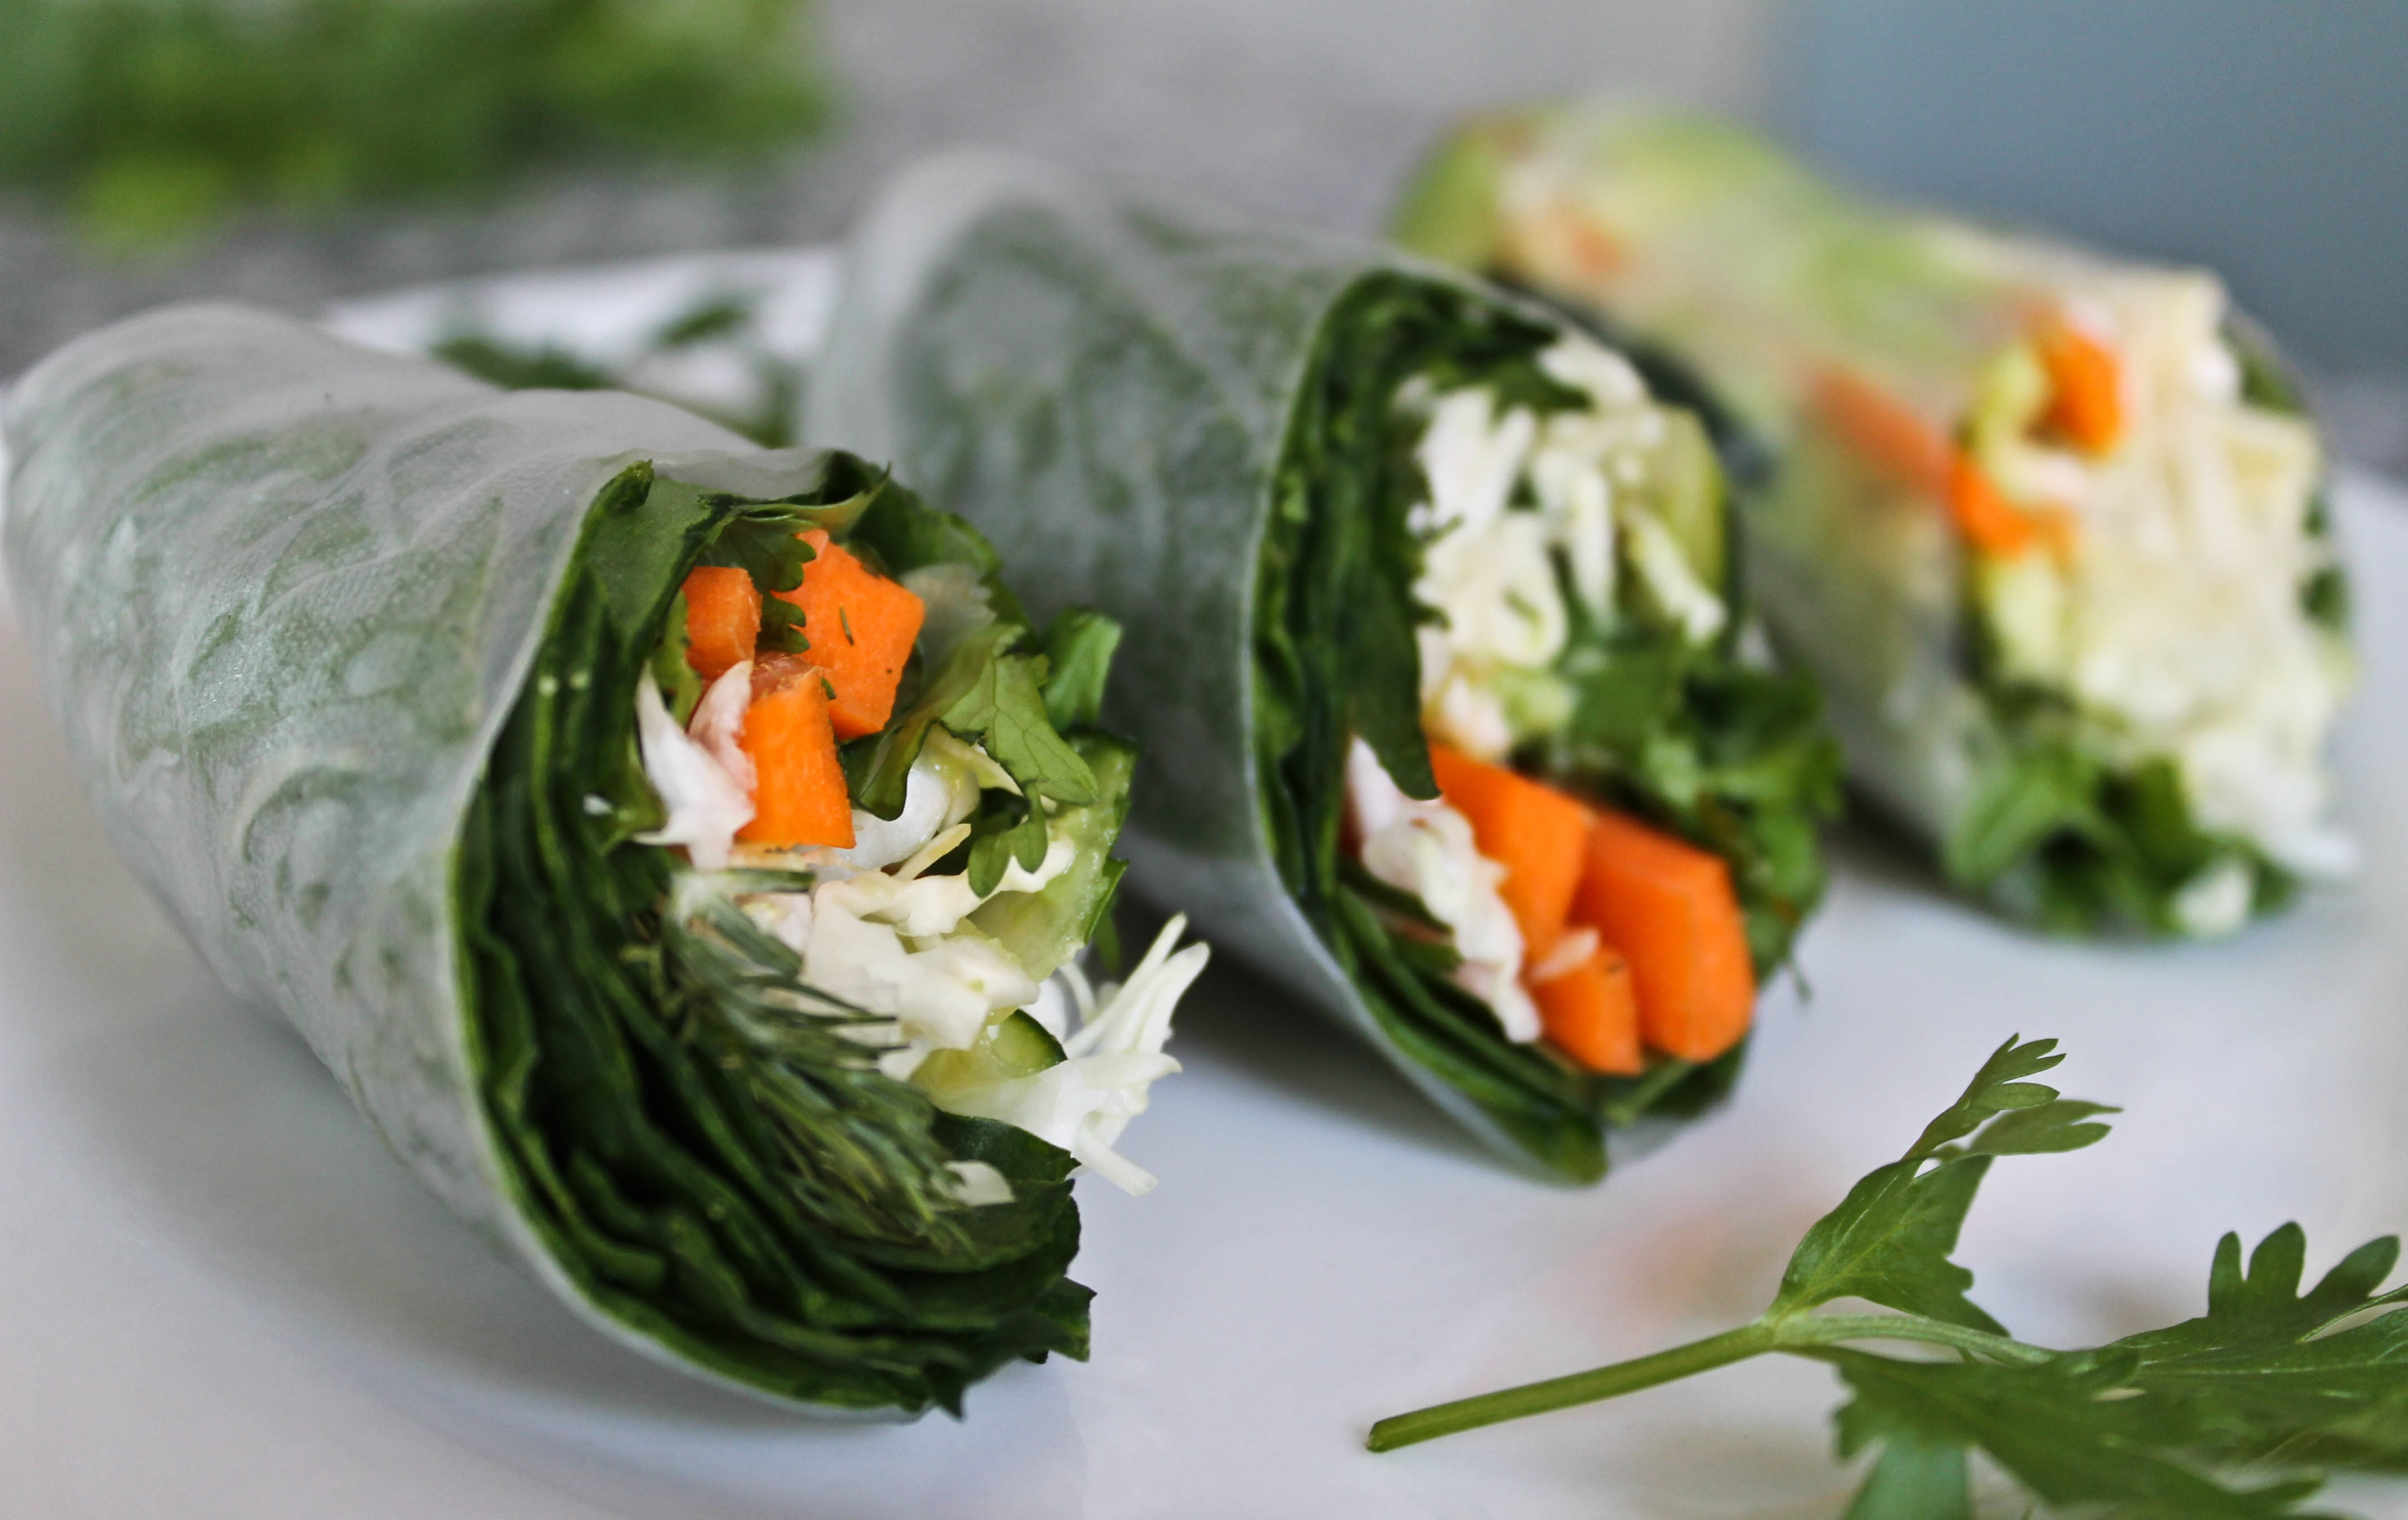 Rice Paper Wraps - The Wellness Workshop